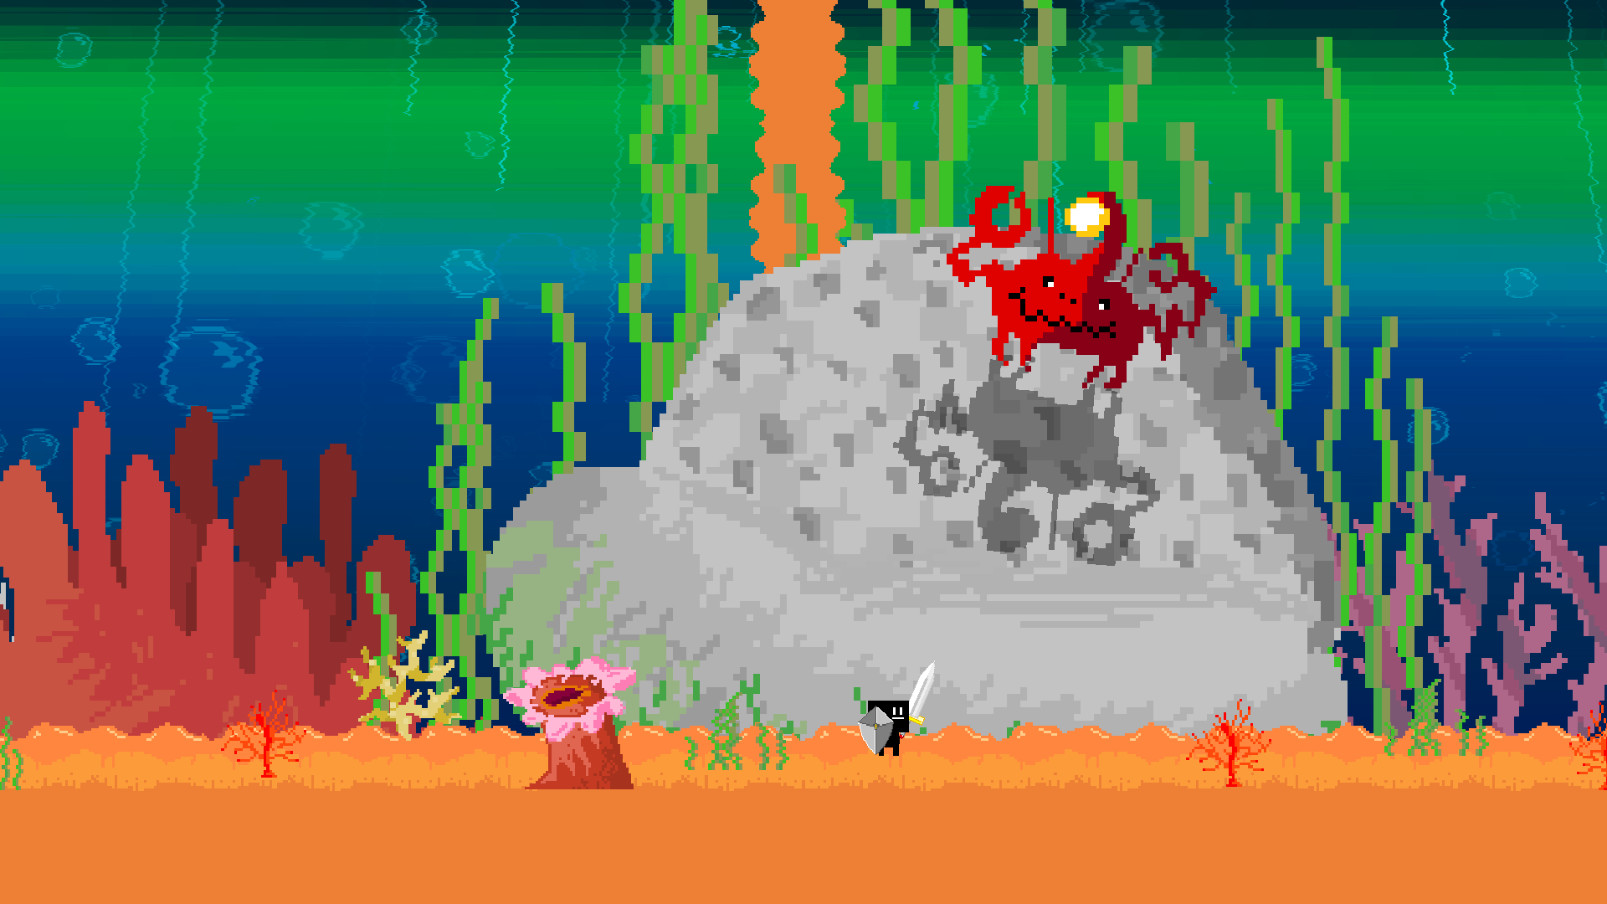 A character in Parasight comes up against a crab-like creature